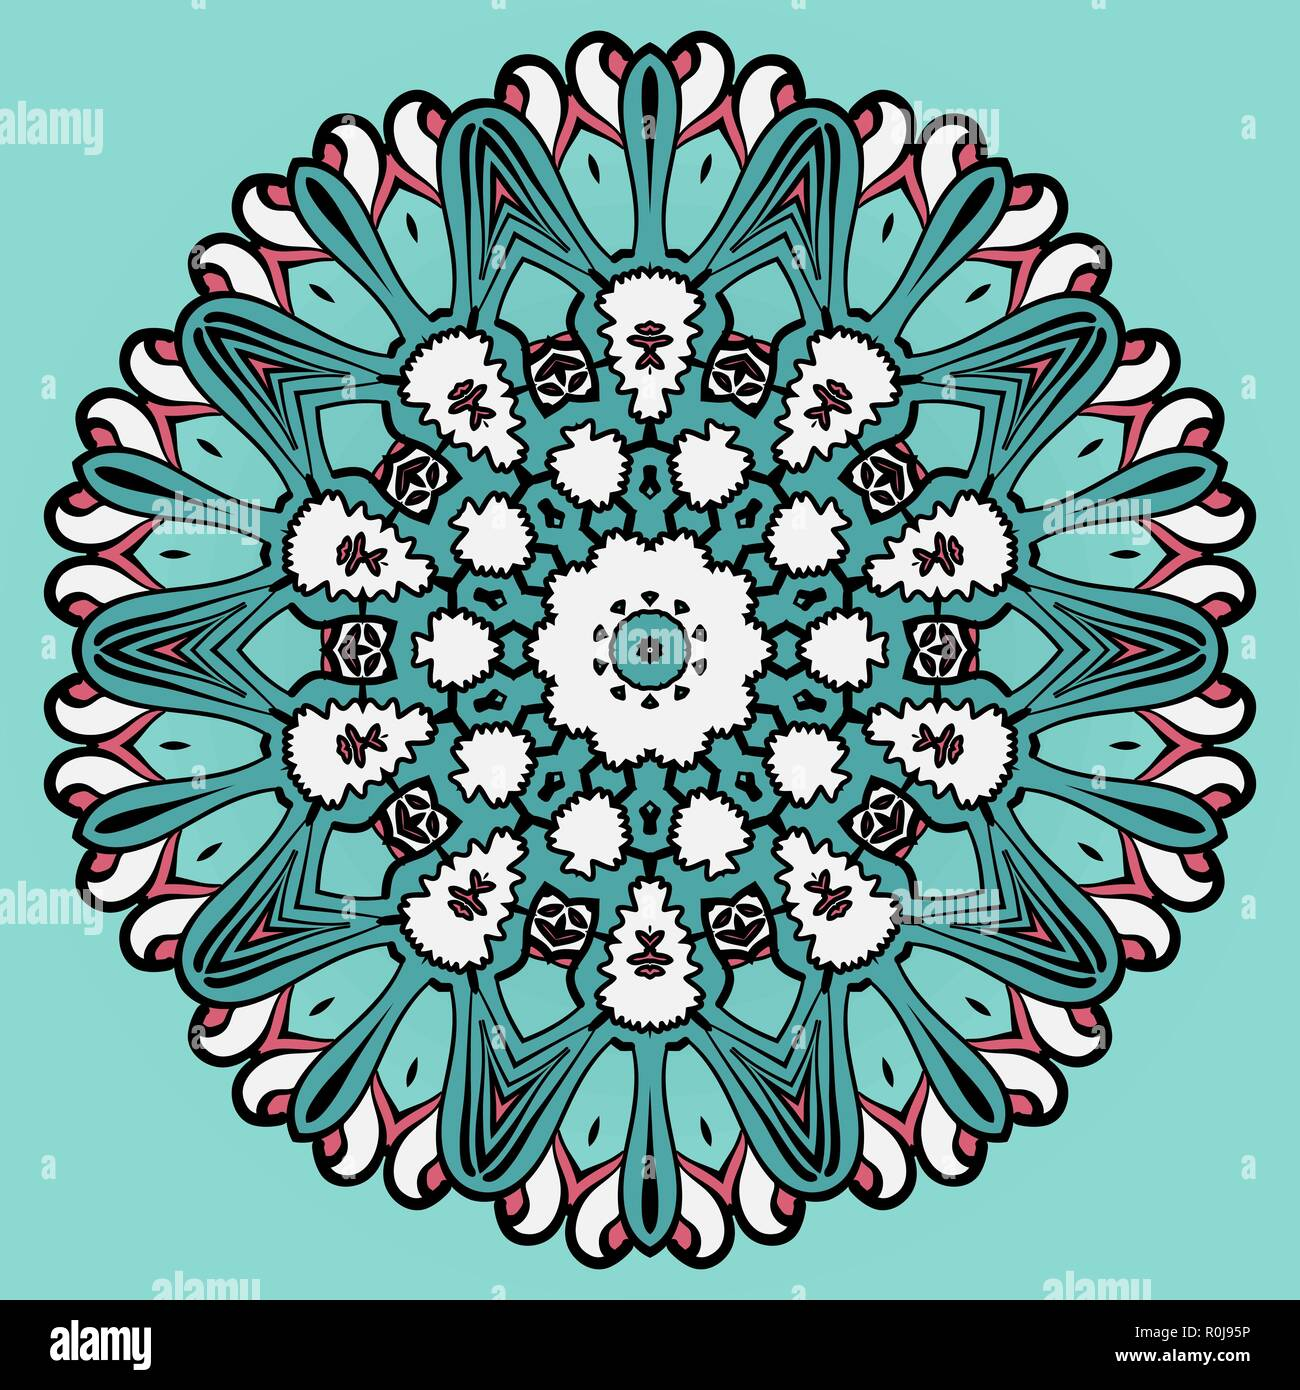 Colorful circle flower mandala background in light  blue. - Stock Image